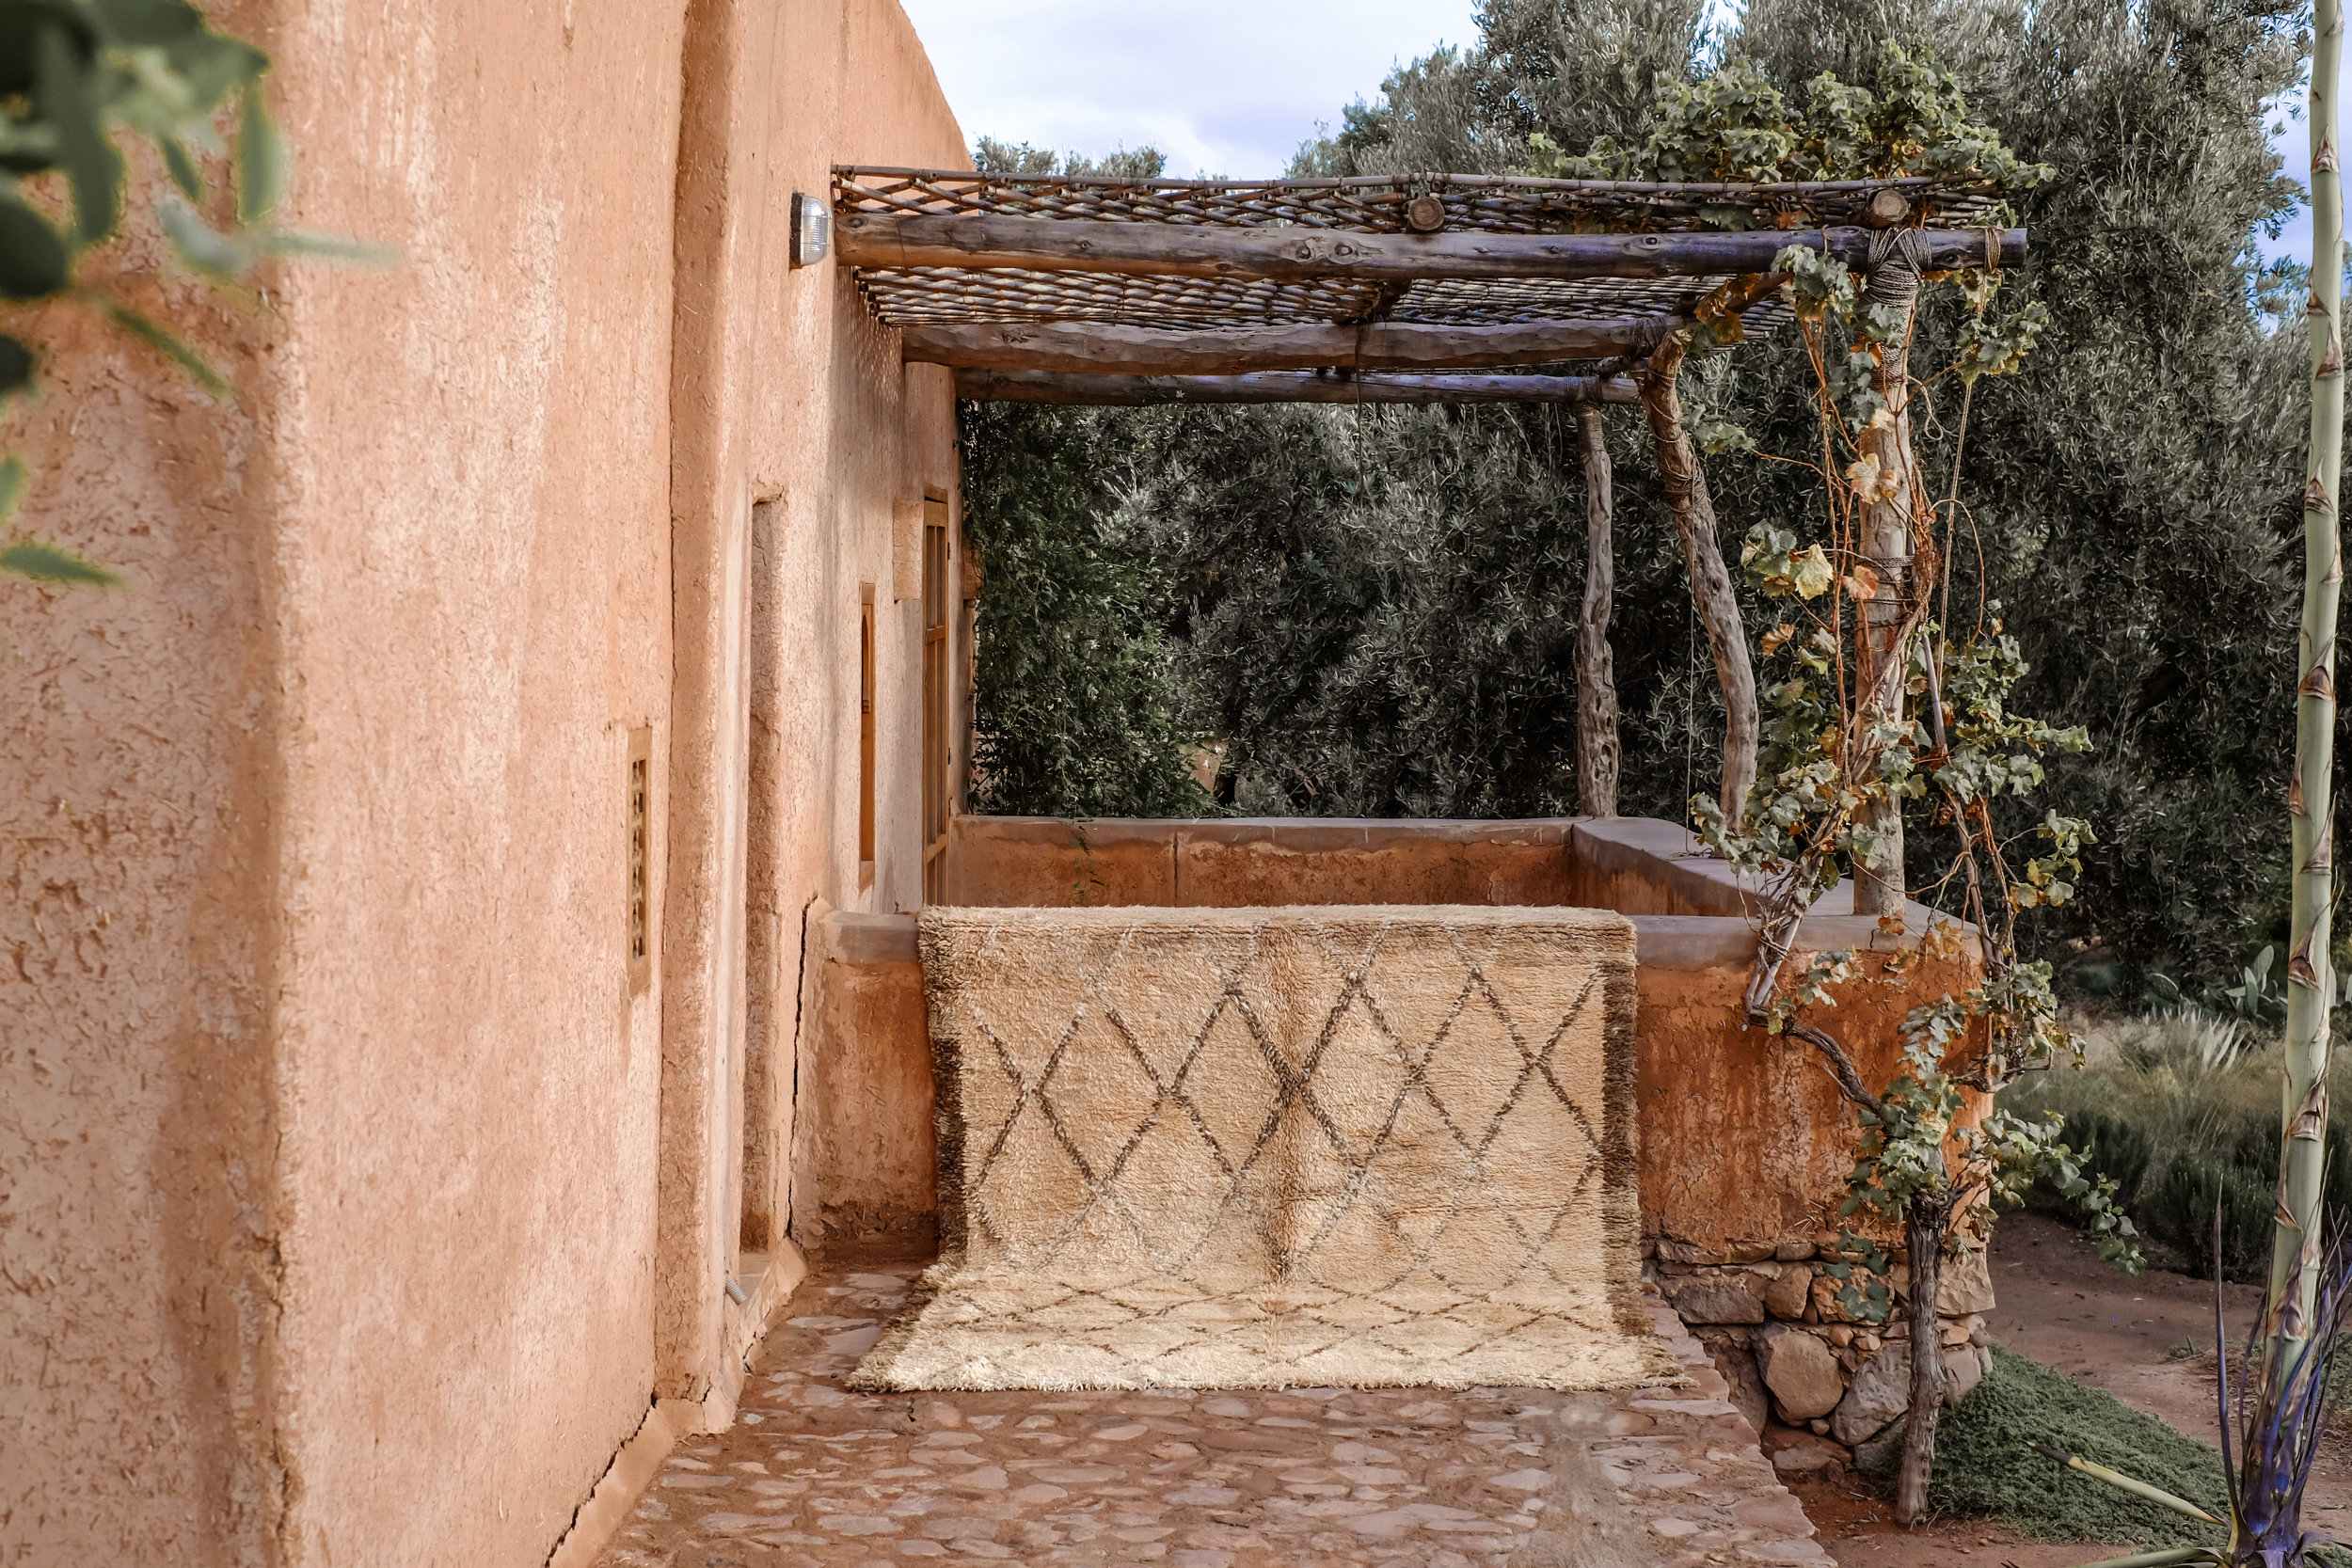 berber rugs  - 100% wool, authentically woven in looms in the middle atlas region of morocco by berber women skilled in weaving traditions and craftsmanship.